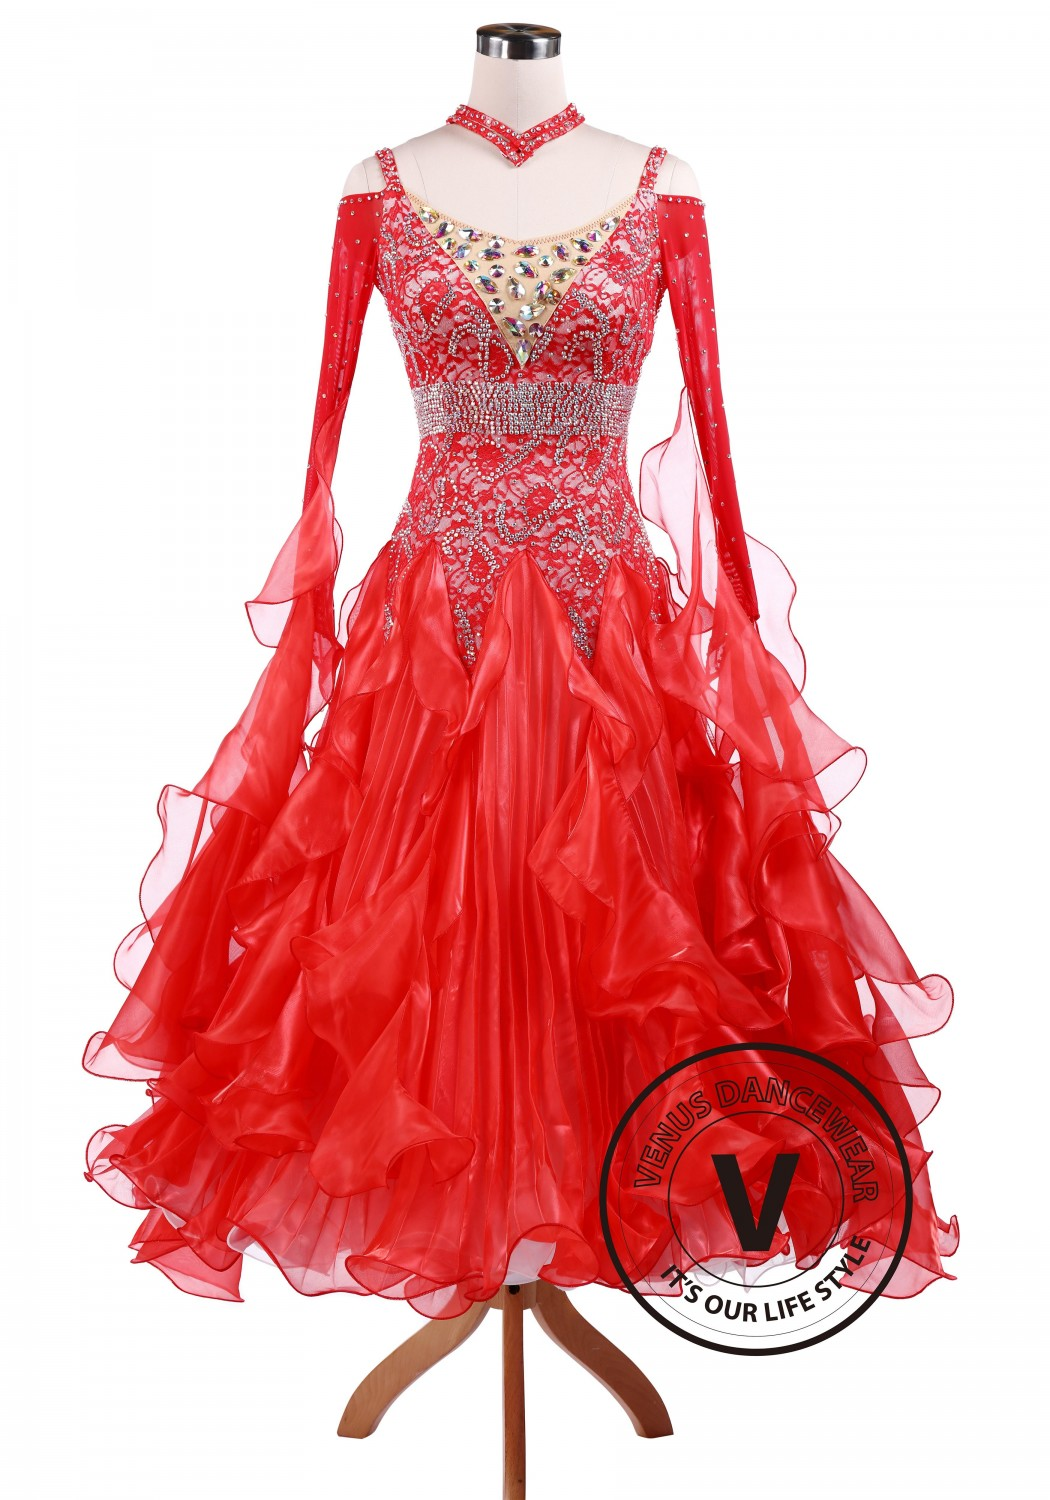 Bright Red Waltz Tango Competition Ballroom Dance Dress